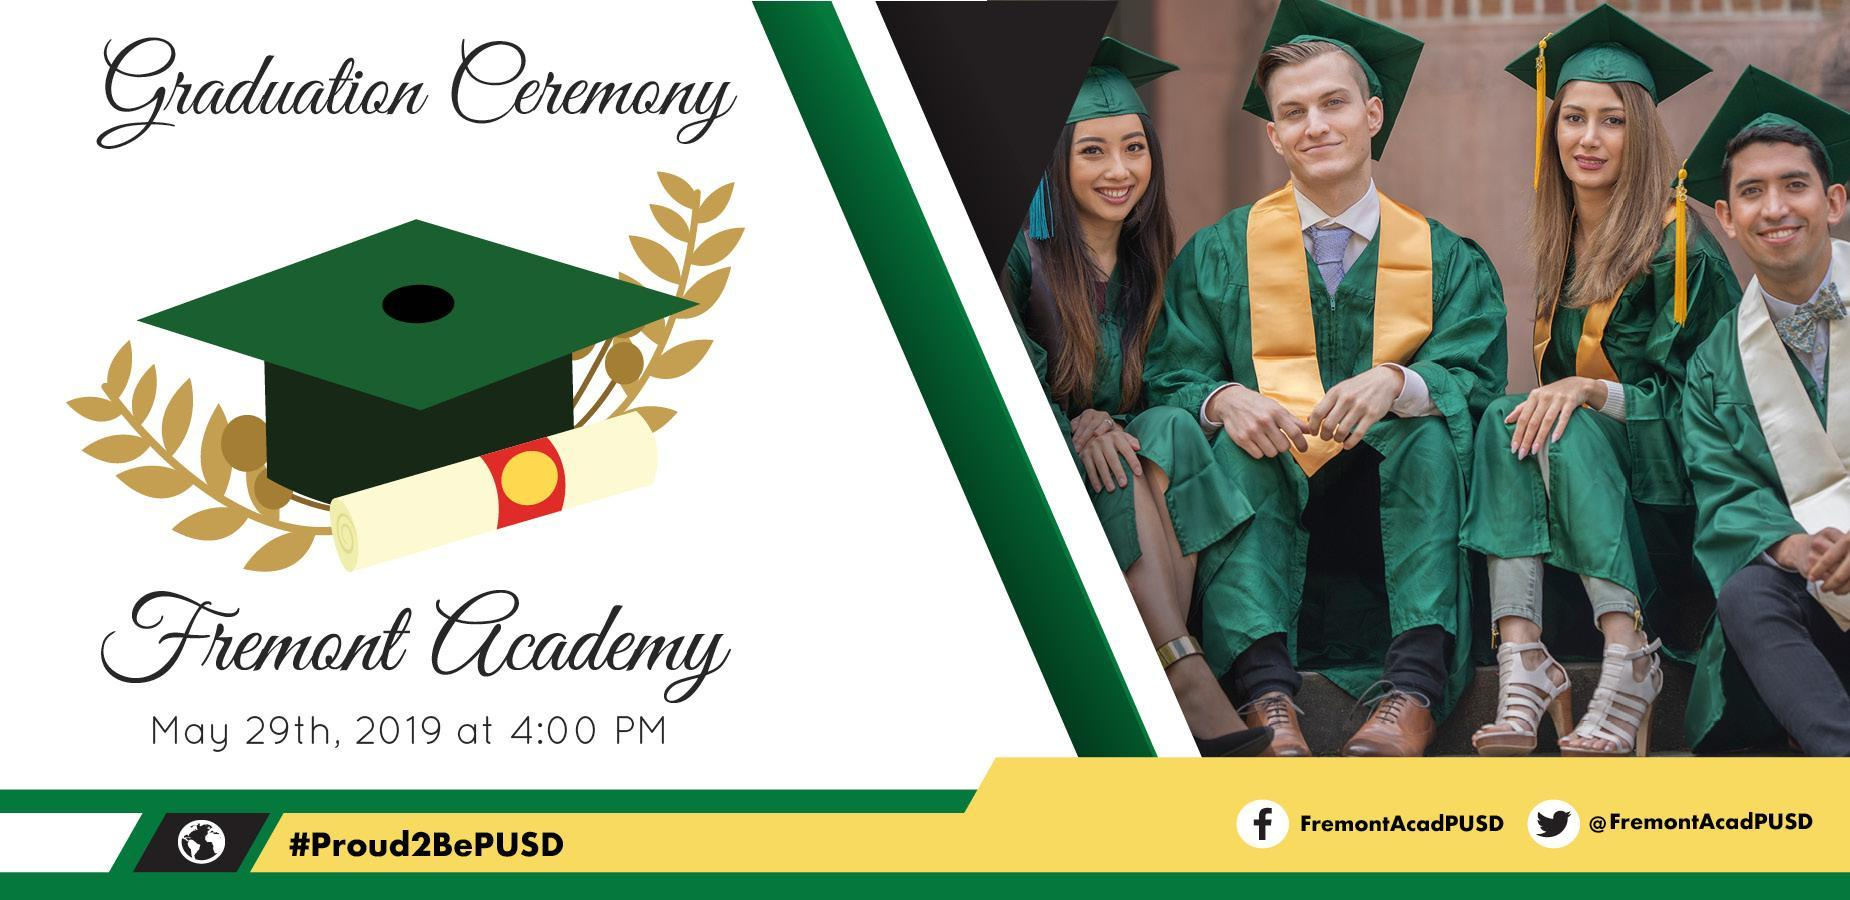 Fremont Academy: May 29th, 2019 at 4:00 pm